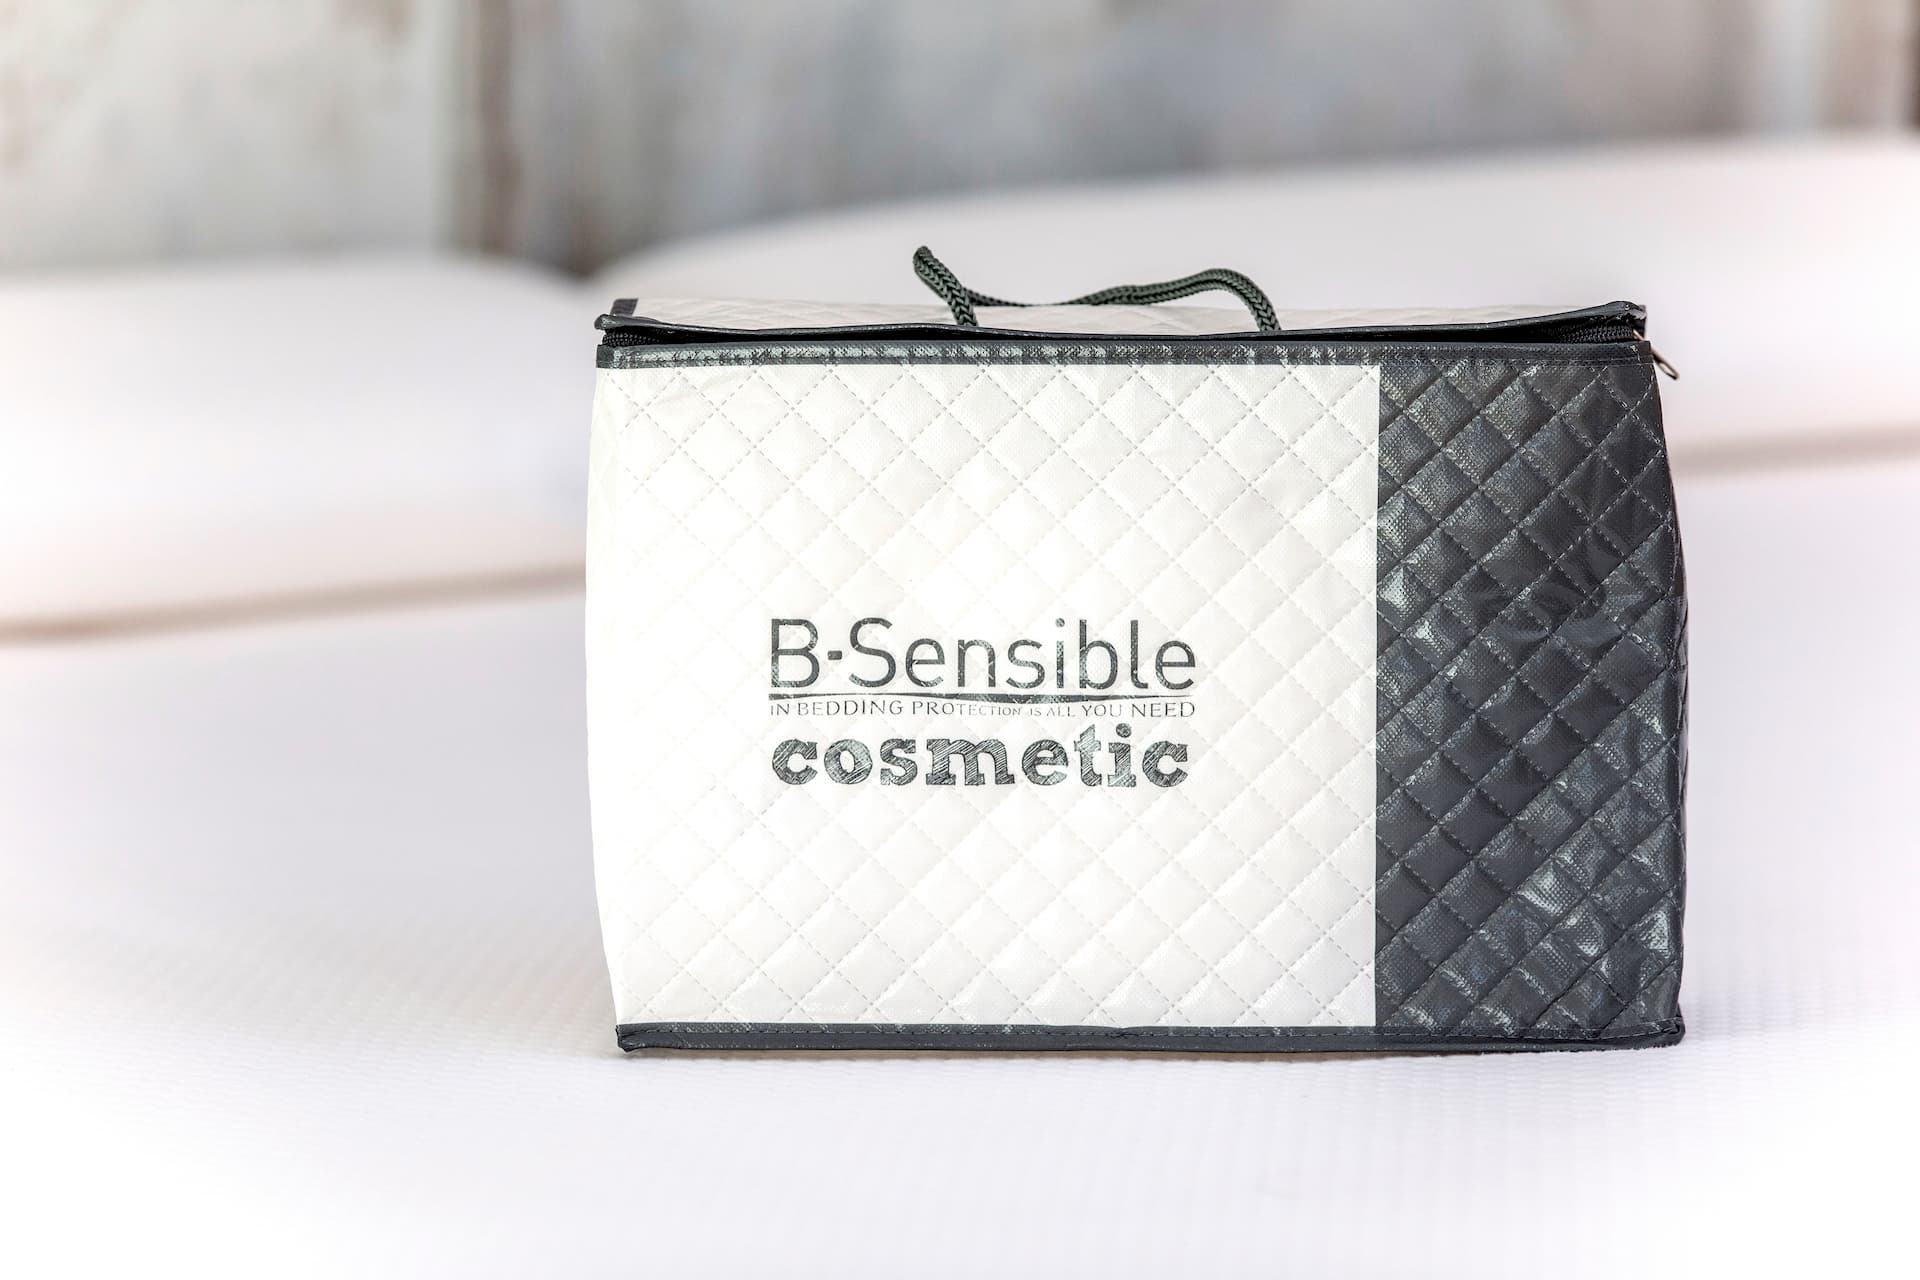 BSensible Cosmetic